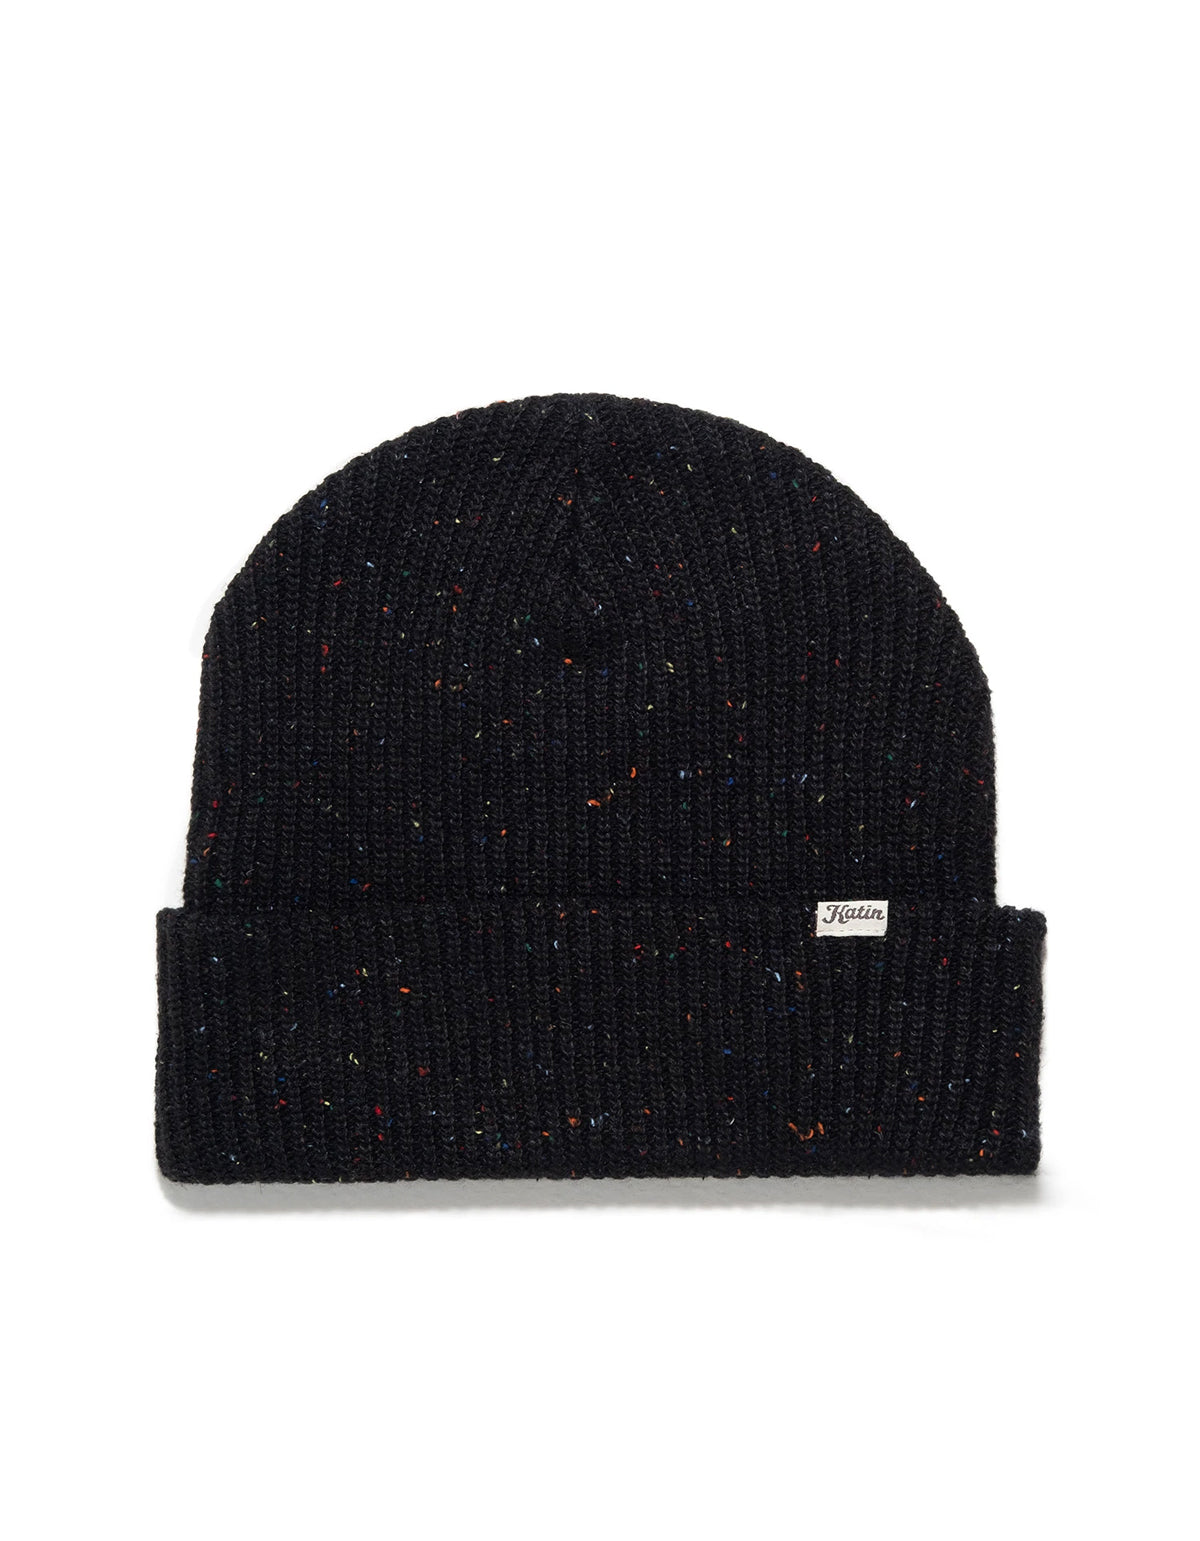 Katin Basic Beanie in Black Marle